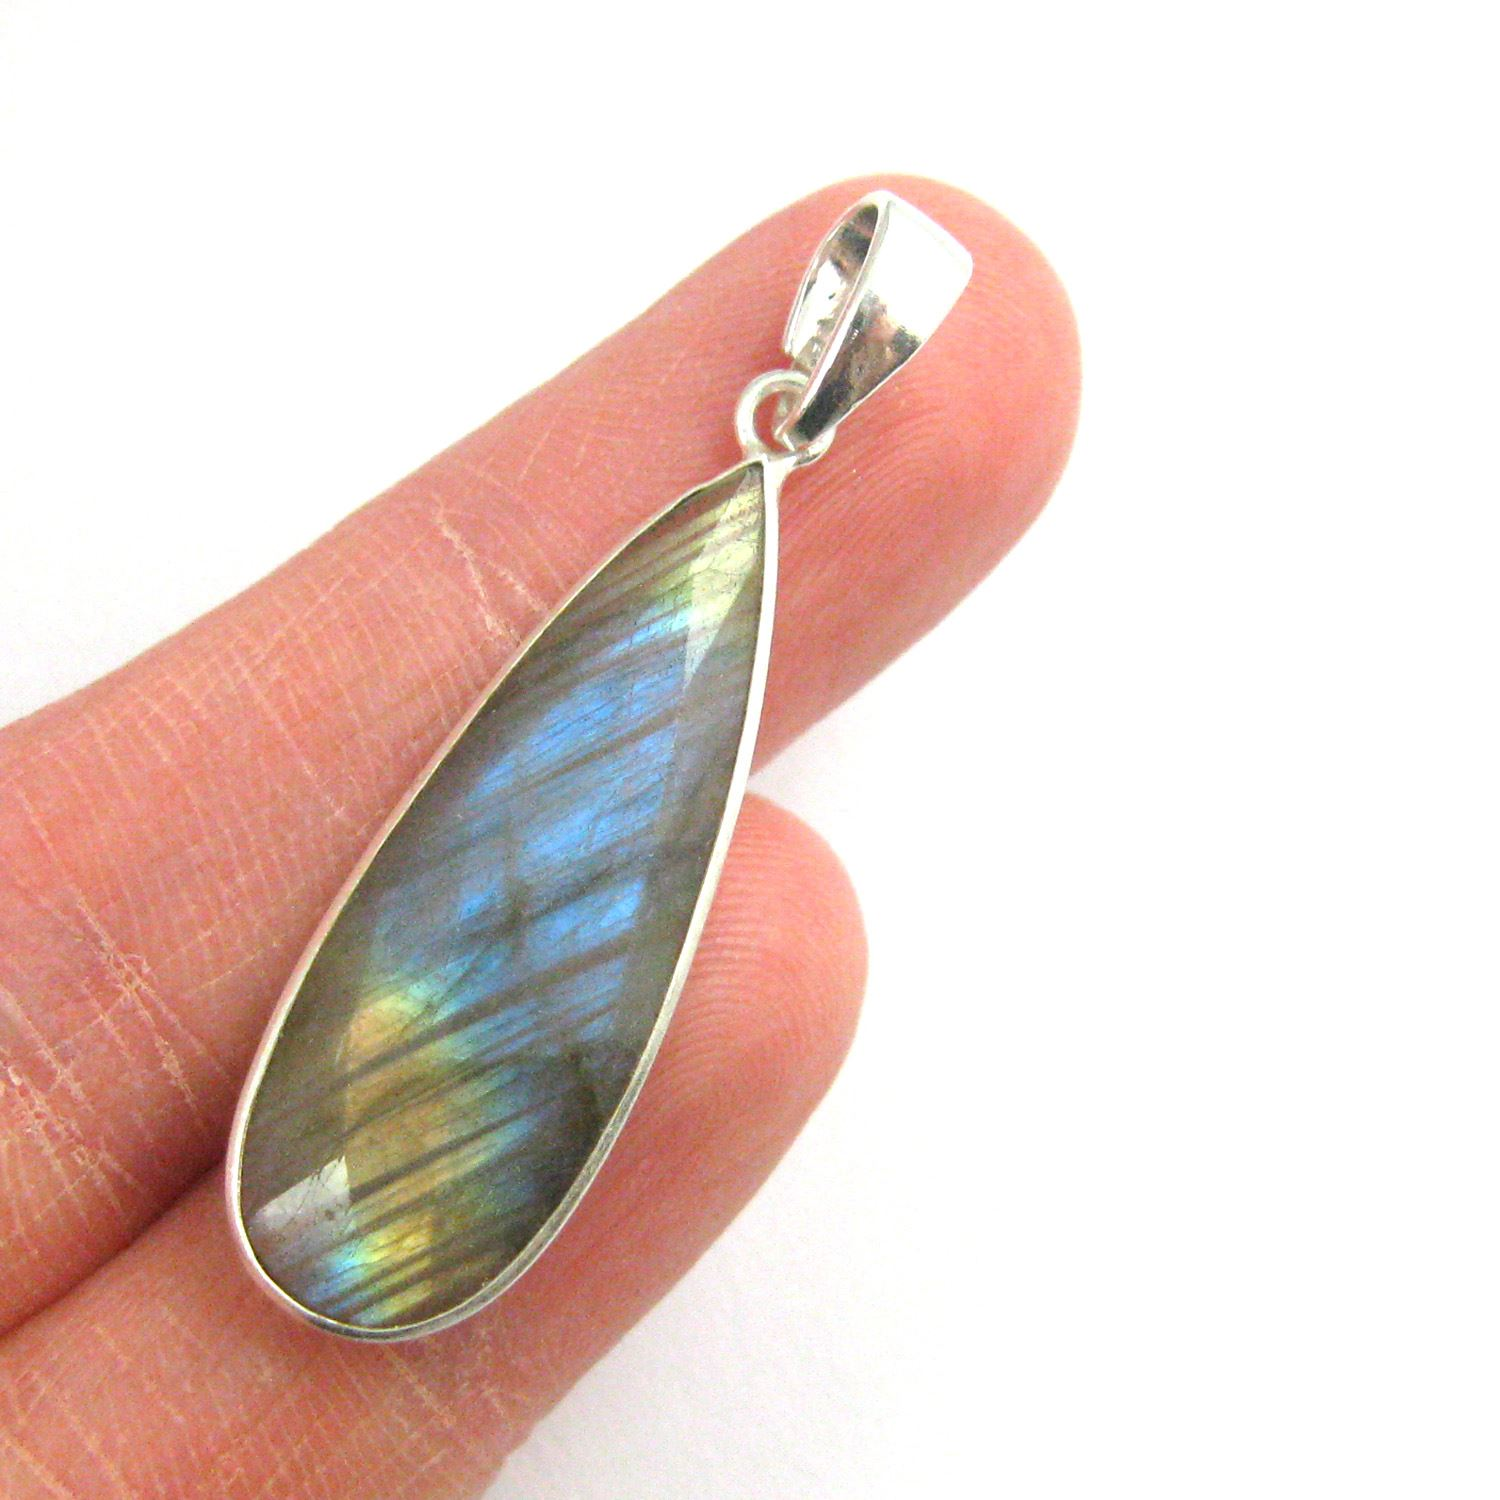 Bezel Gemstone Pendant with Bail - Sterling Silver Elongated Teardrpo Gem Pendant - Ready for Necklace - 40mm - Peru Chalcedony- Labradorite